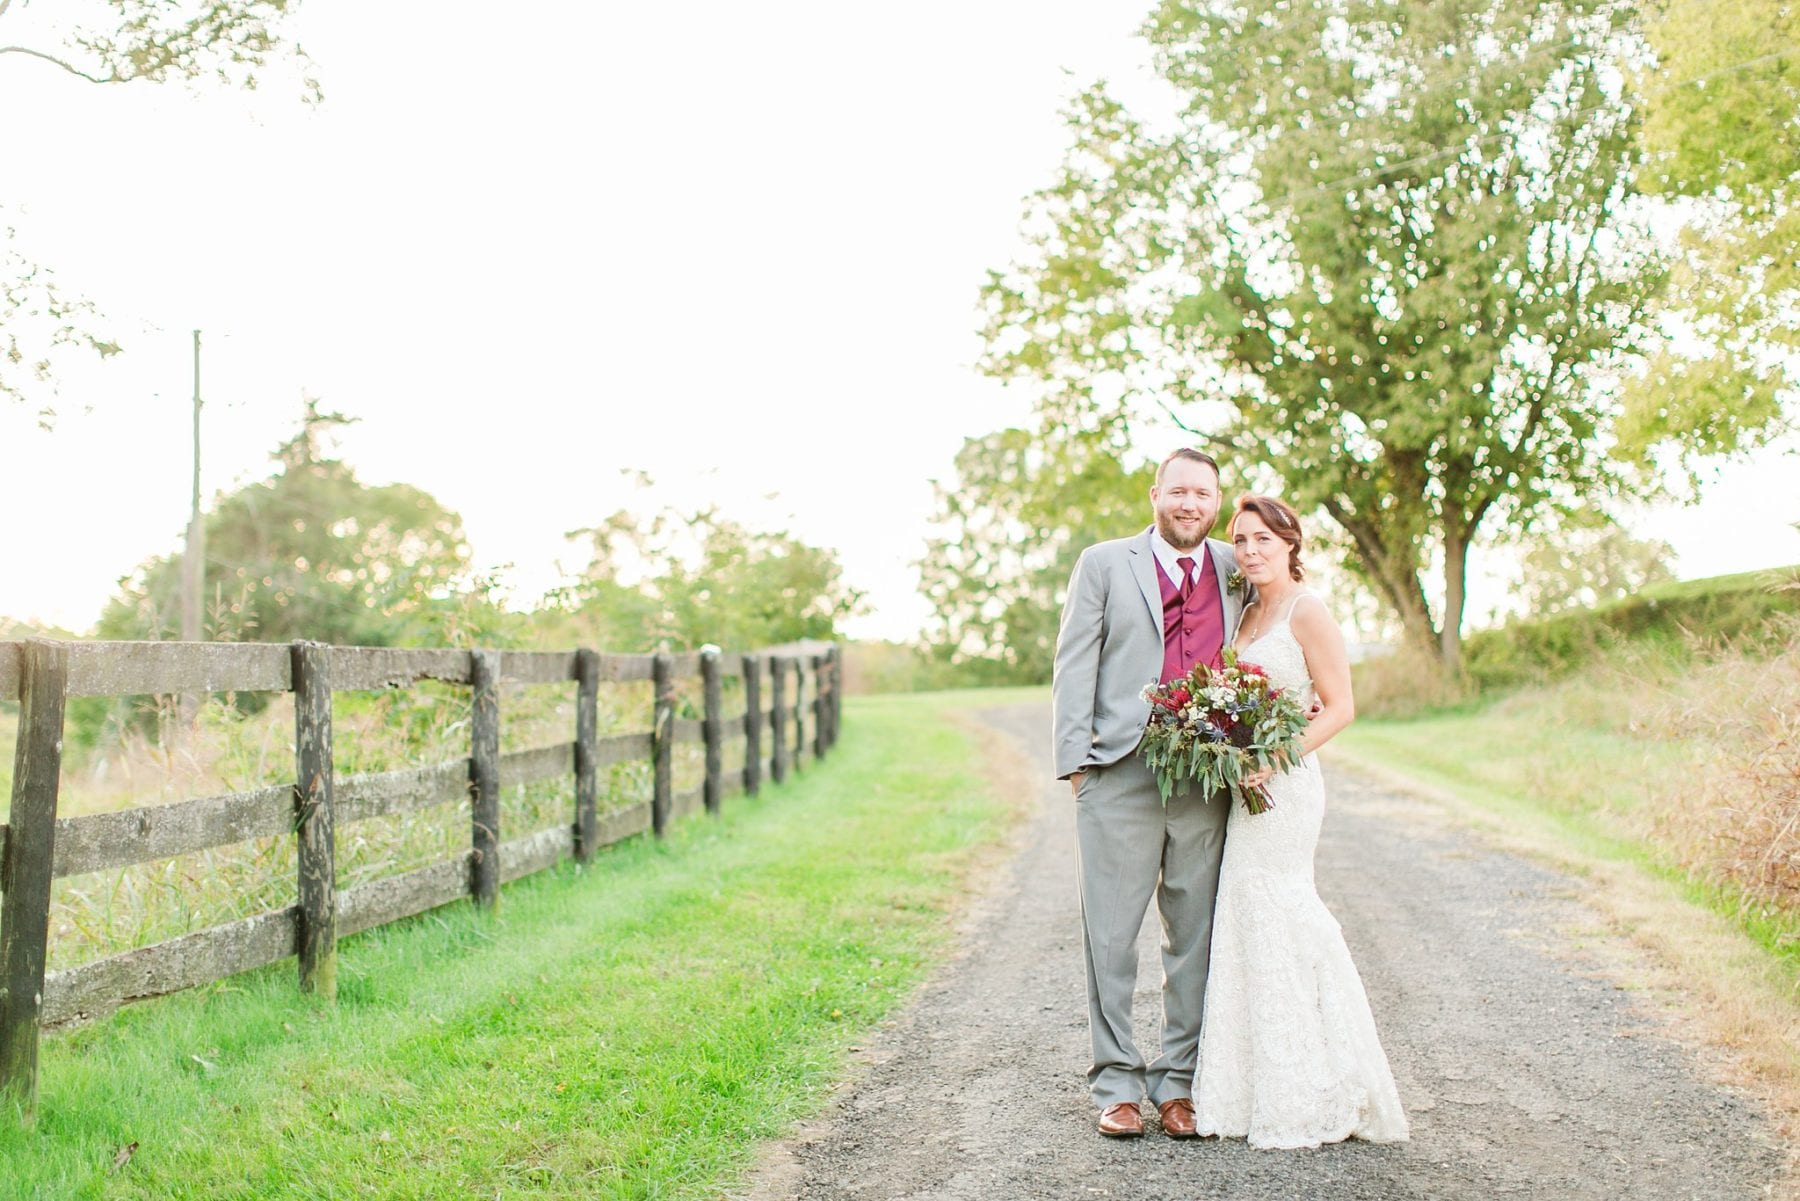 Tranquility Farm Wedding Photos Leesburg Wedding Photographer Megan Kelsey Photography Virginia Wedding Photographer Matt & Colleen-141.jpg